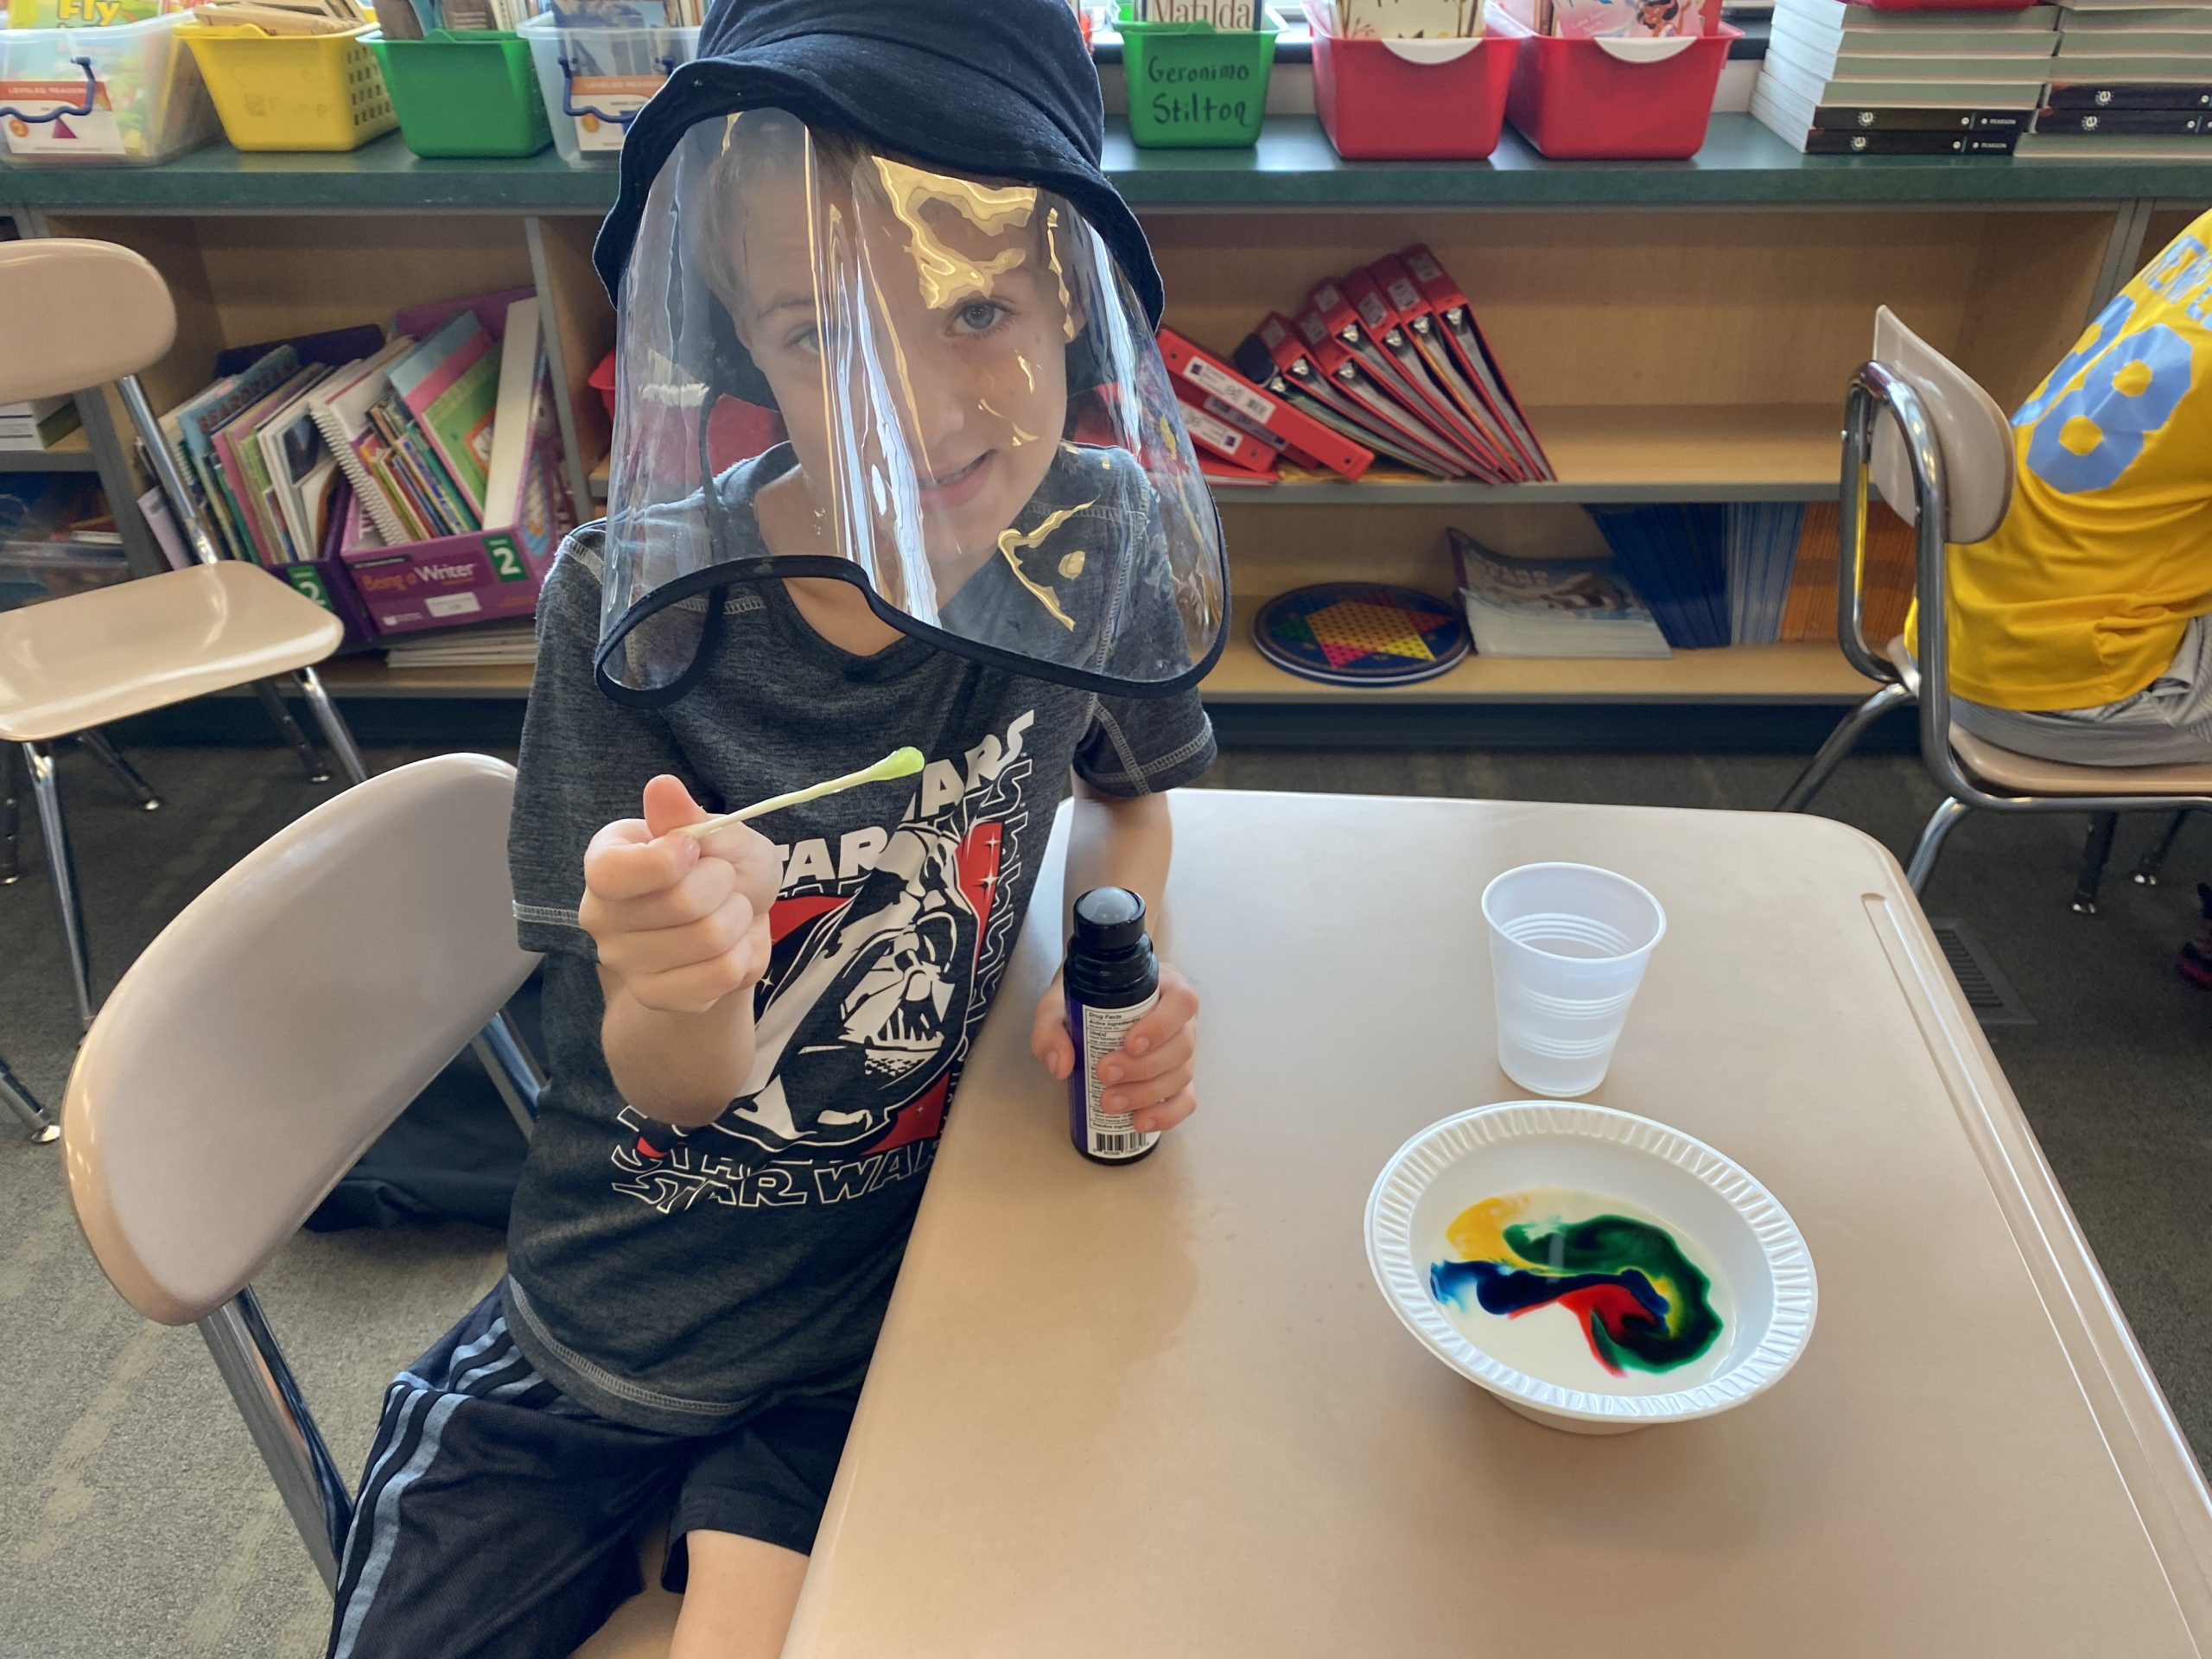 Chemical and physical reactions experiment